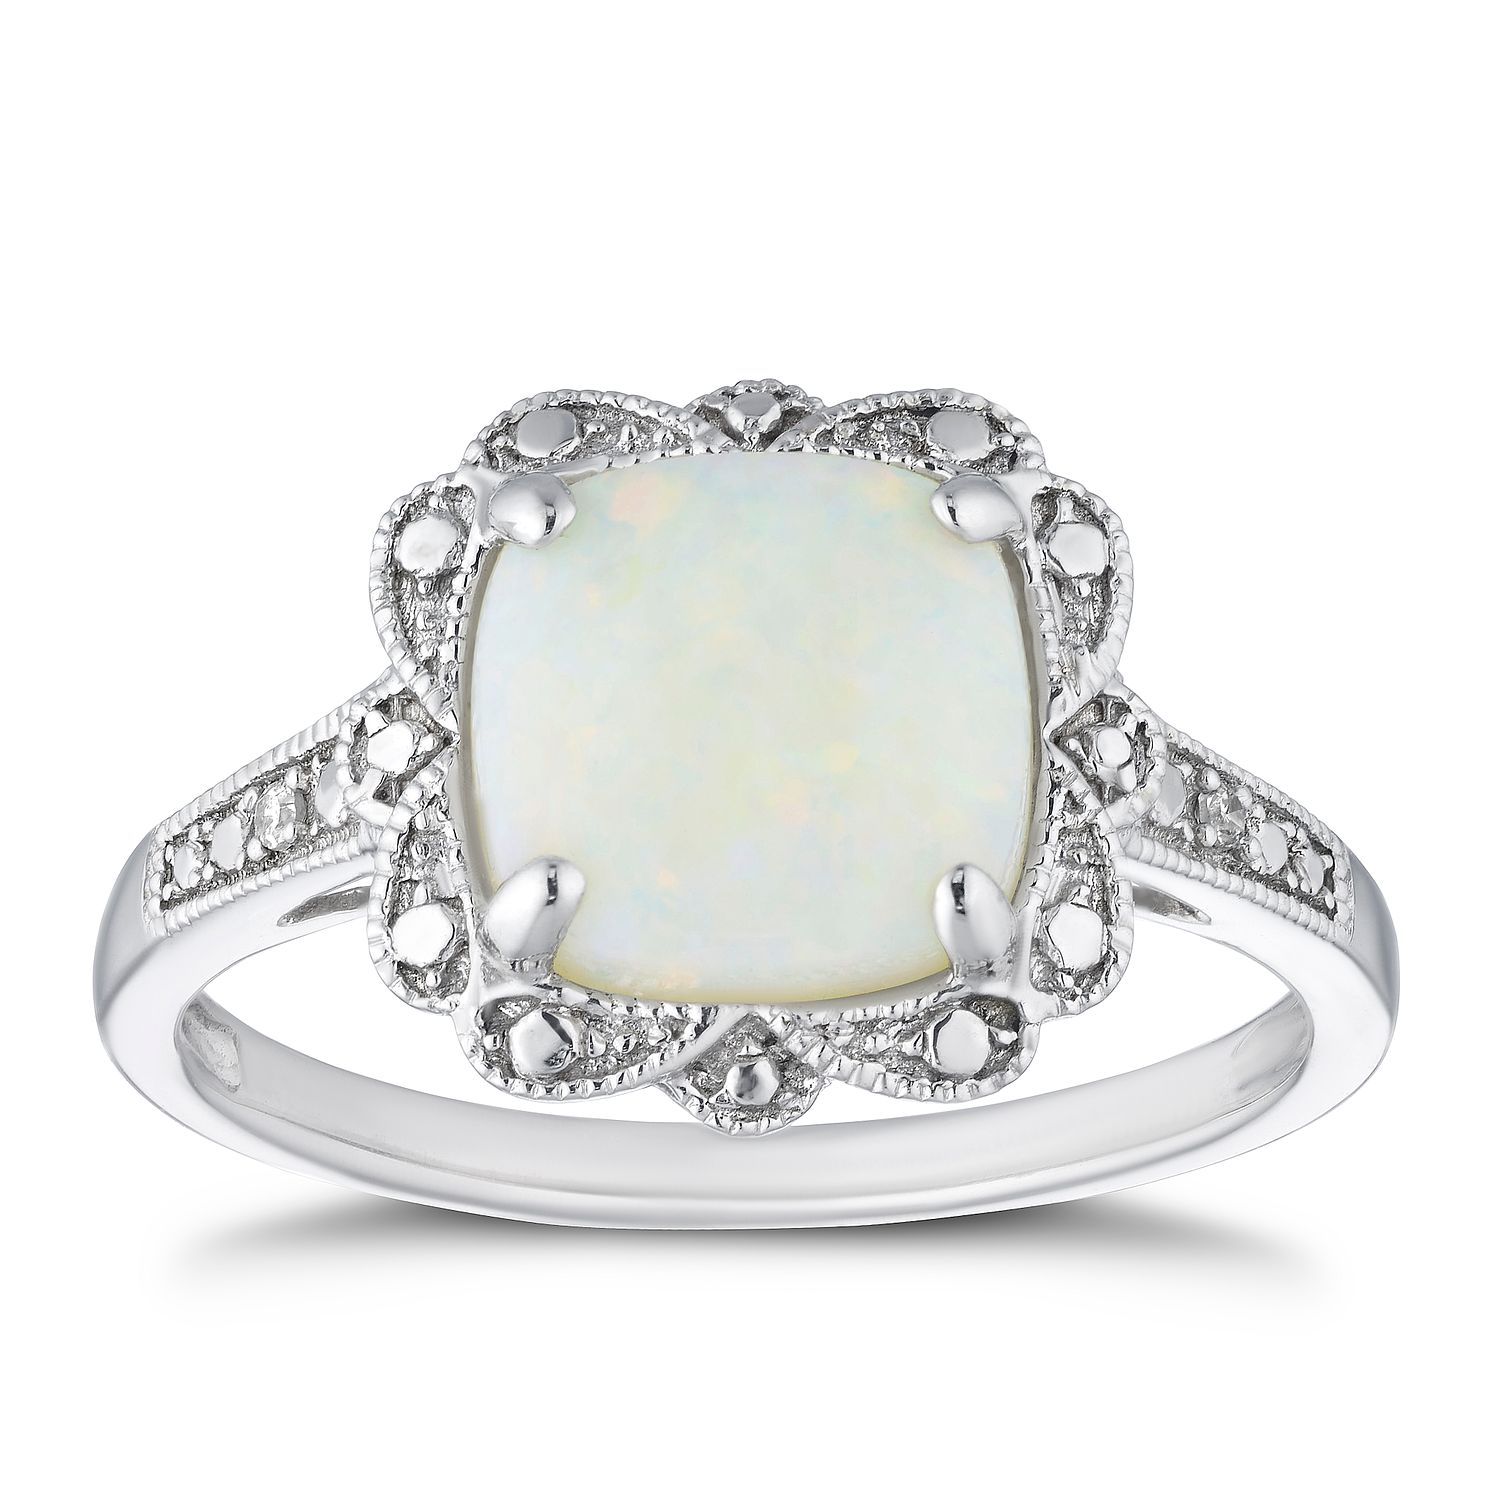 9ct White Gold Diamond & Opal Cushion Halo Ring - Product number 4270606